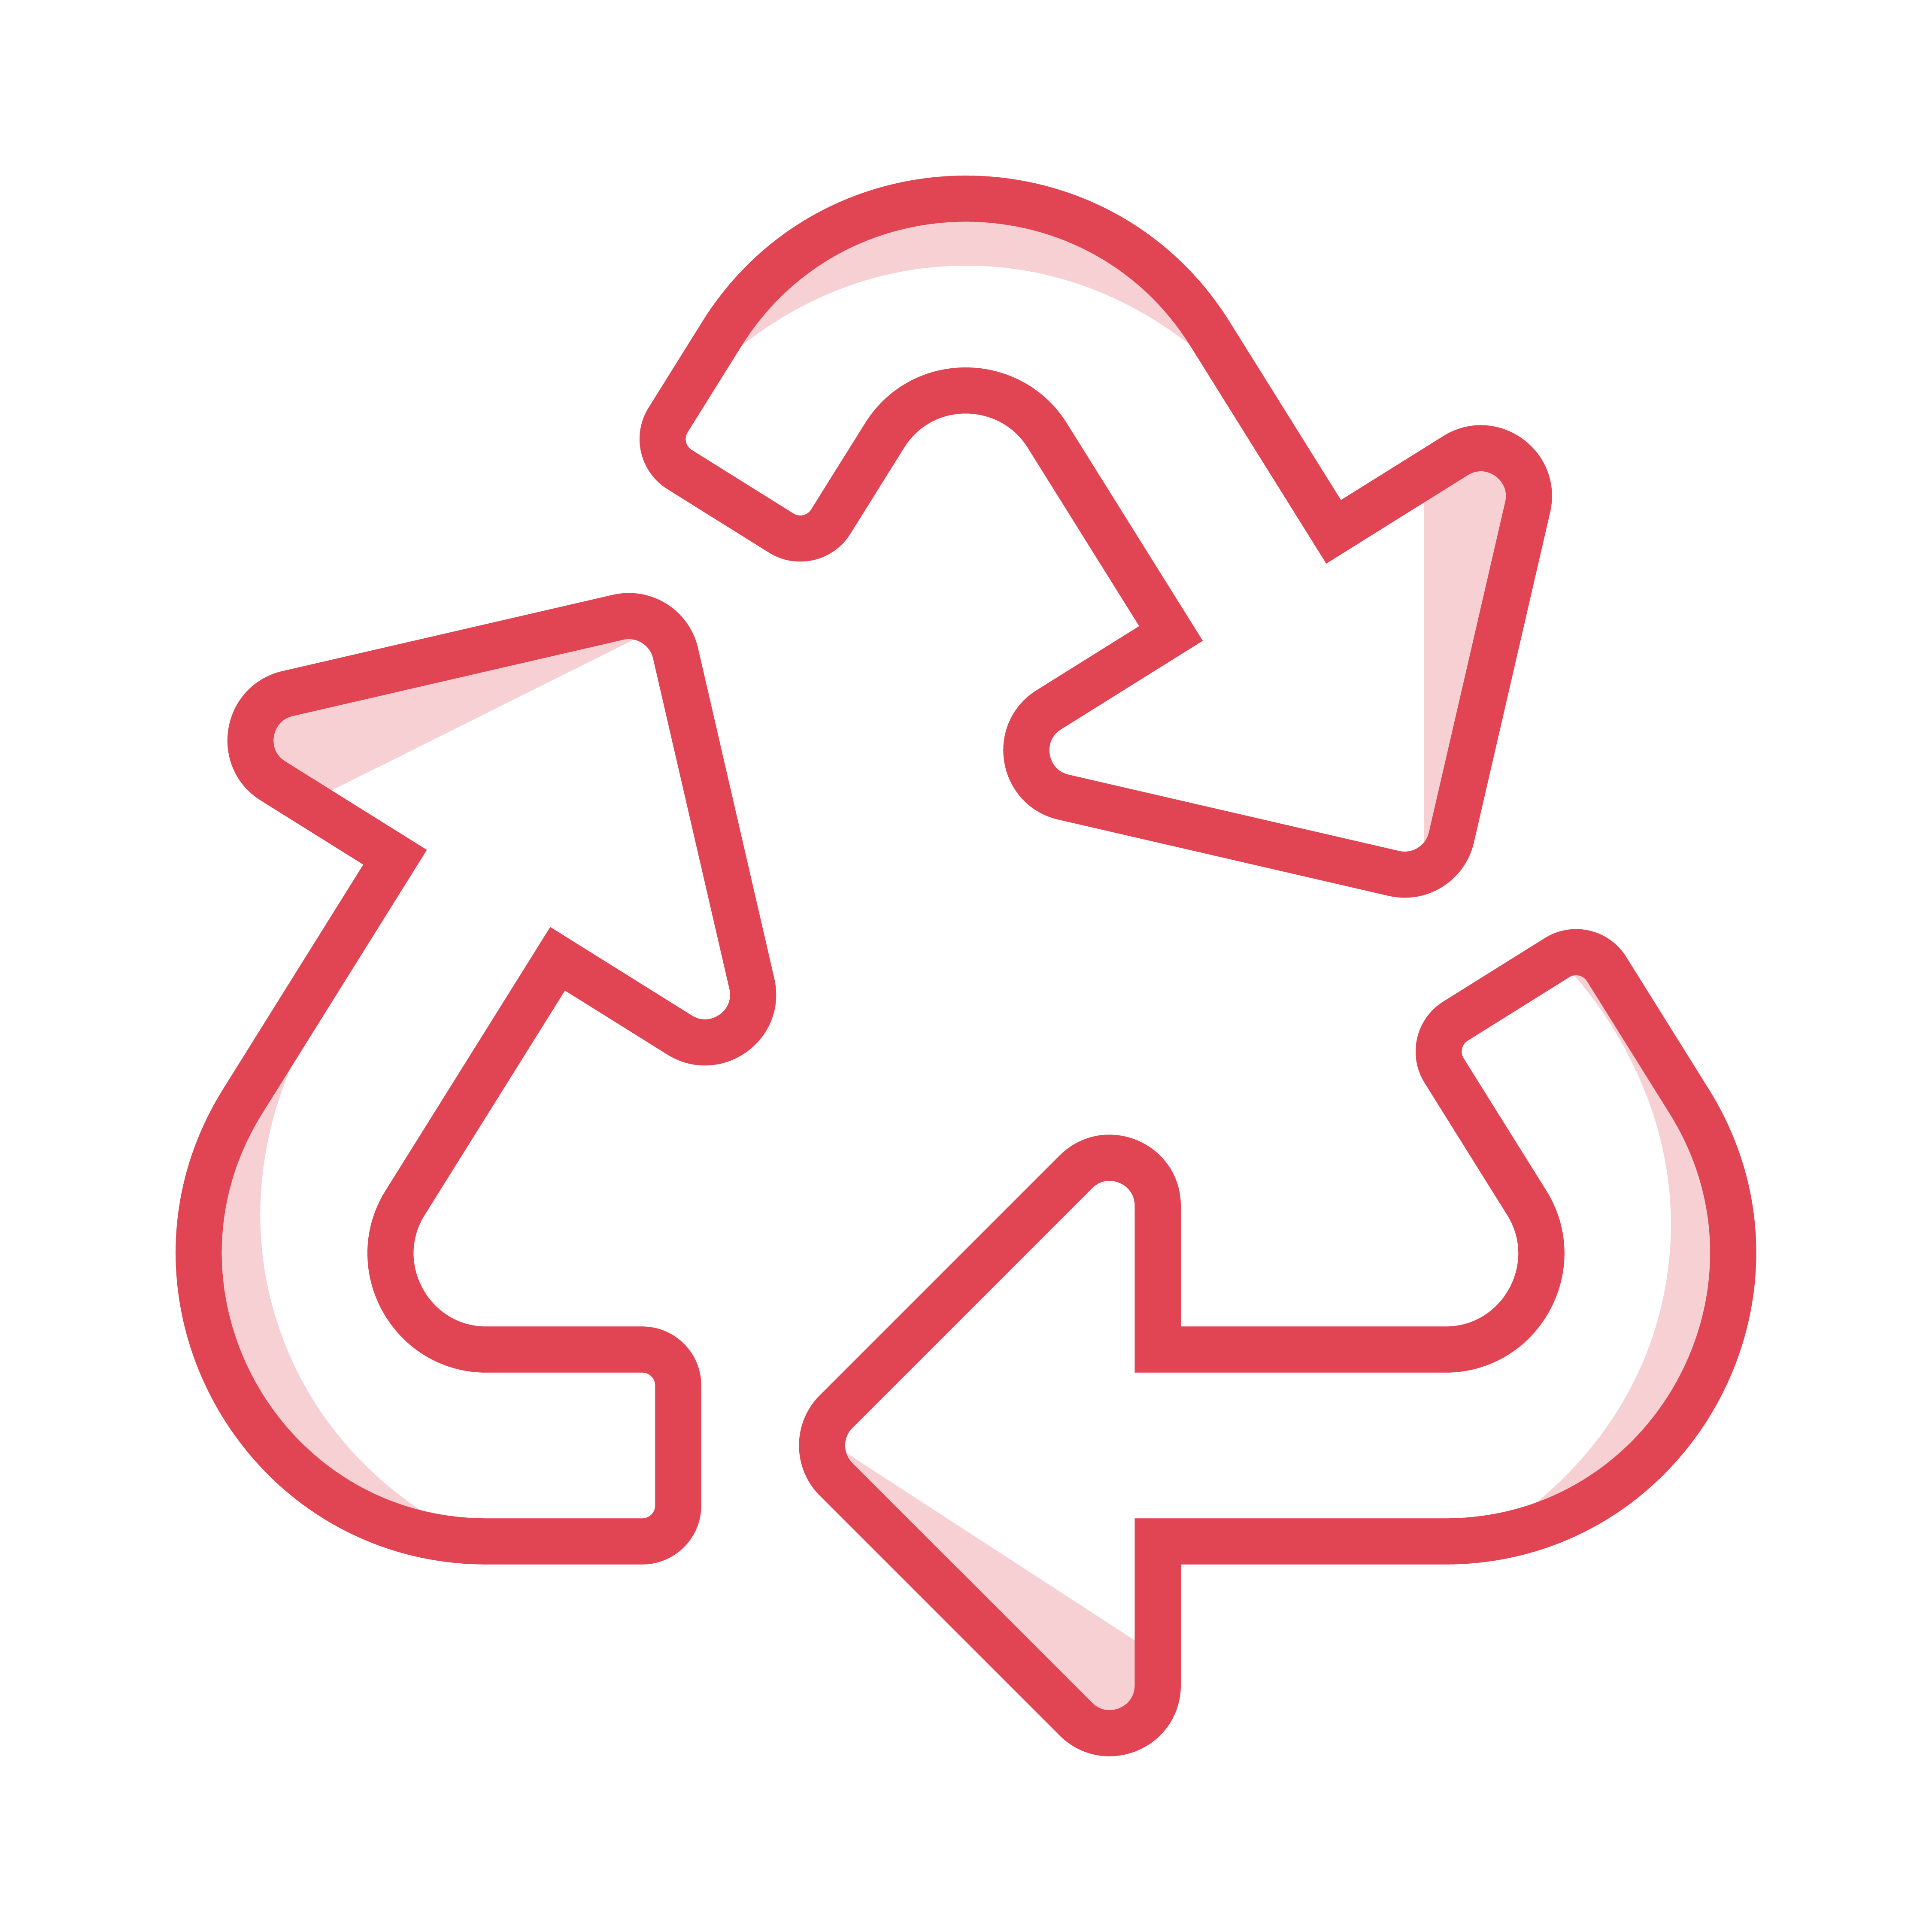 Icon of a recycling triangle